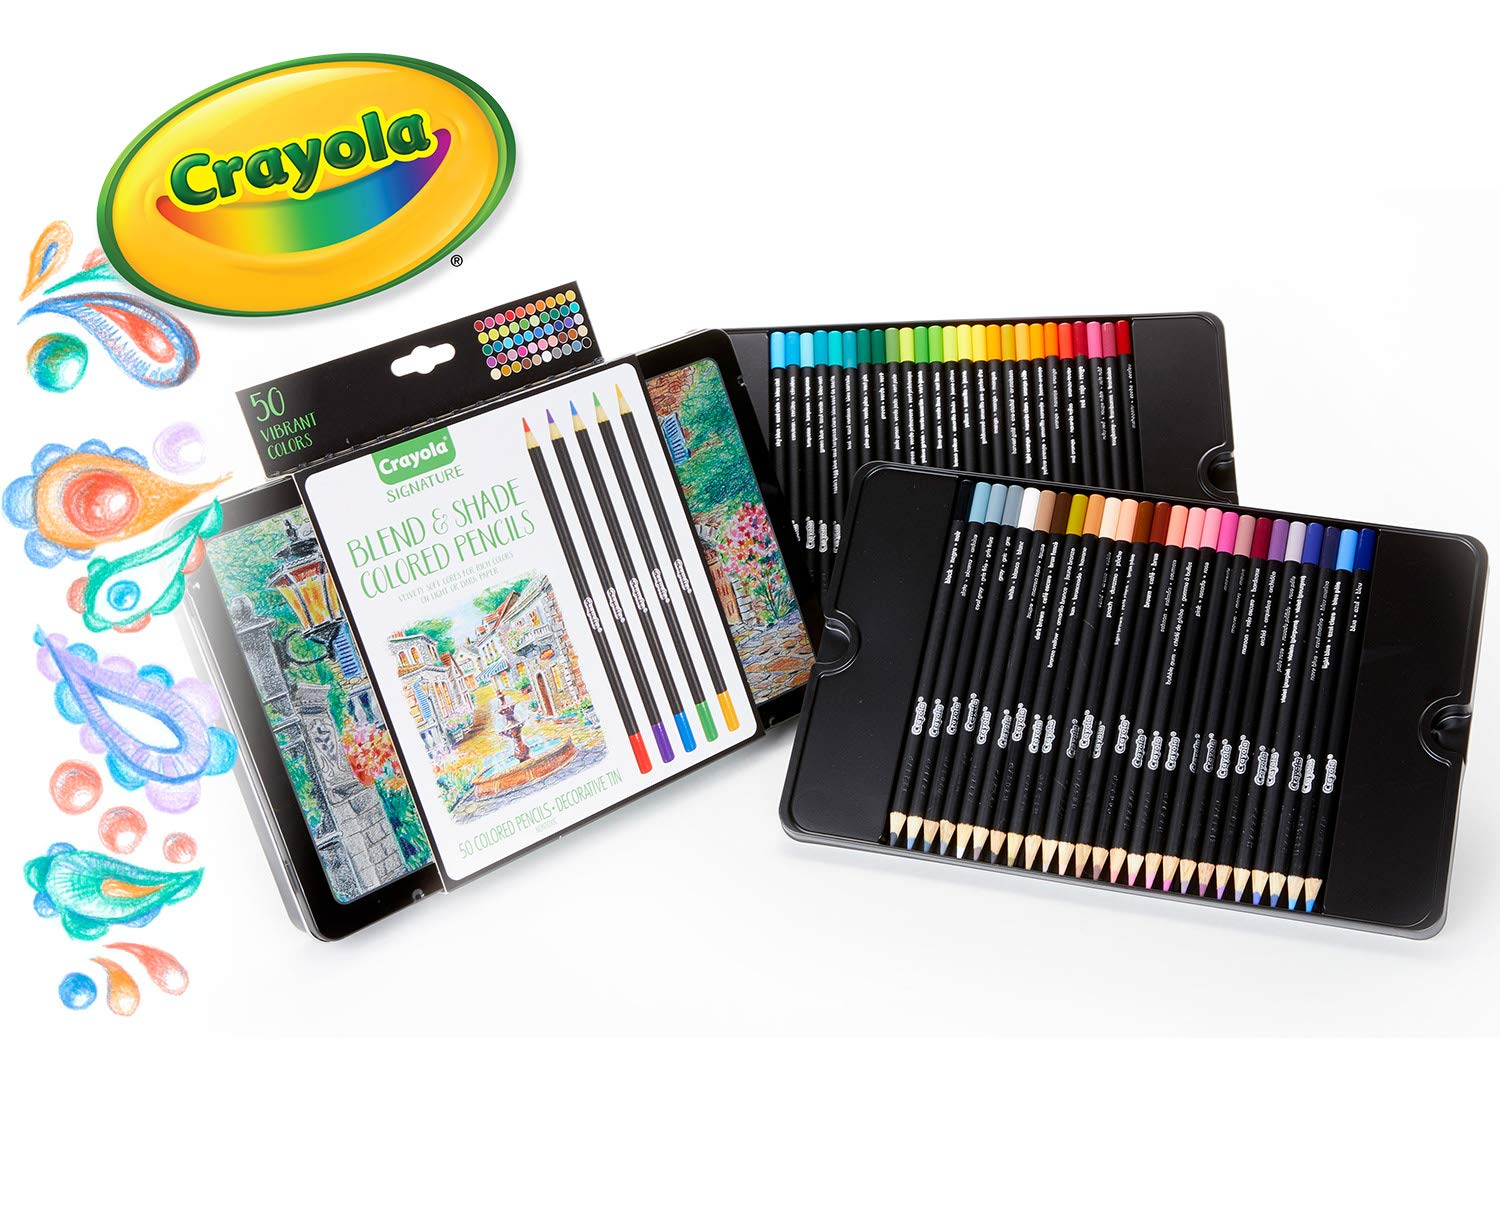 Crayola Blend & Shade Colored Pencils in Decorative Tin, Assorted Colors, Gift, 50Count by Crayola